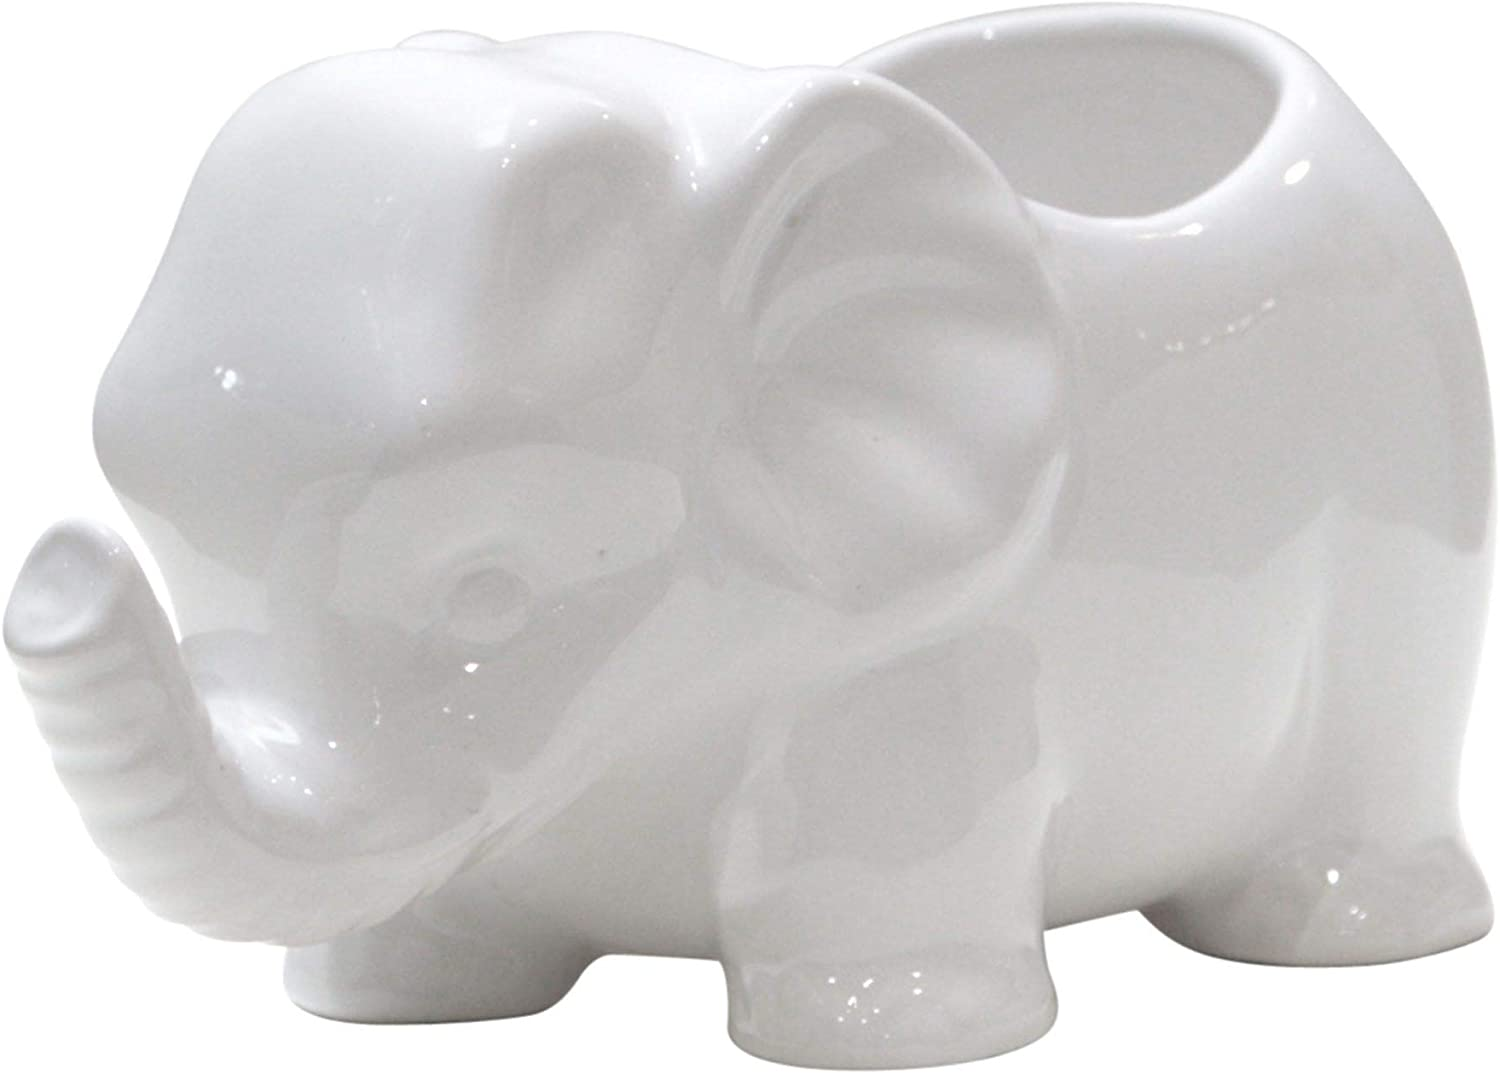 Home Essentials Elephant Planter, 3-inch x 4-inch Height